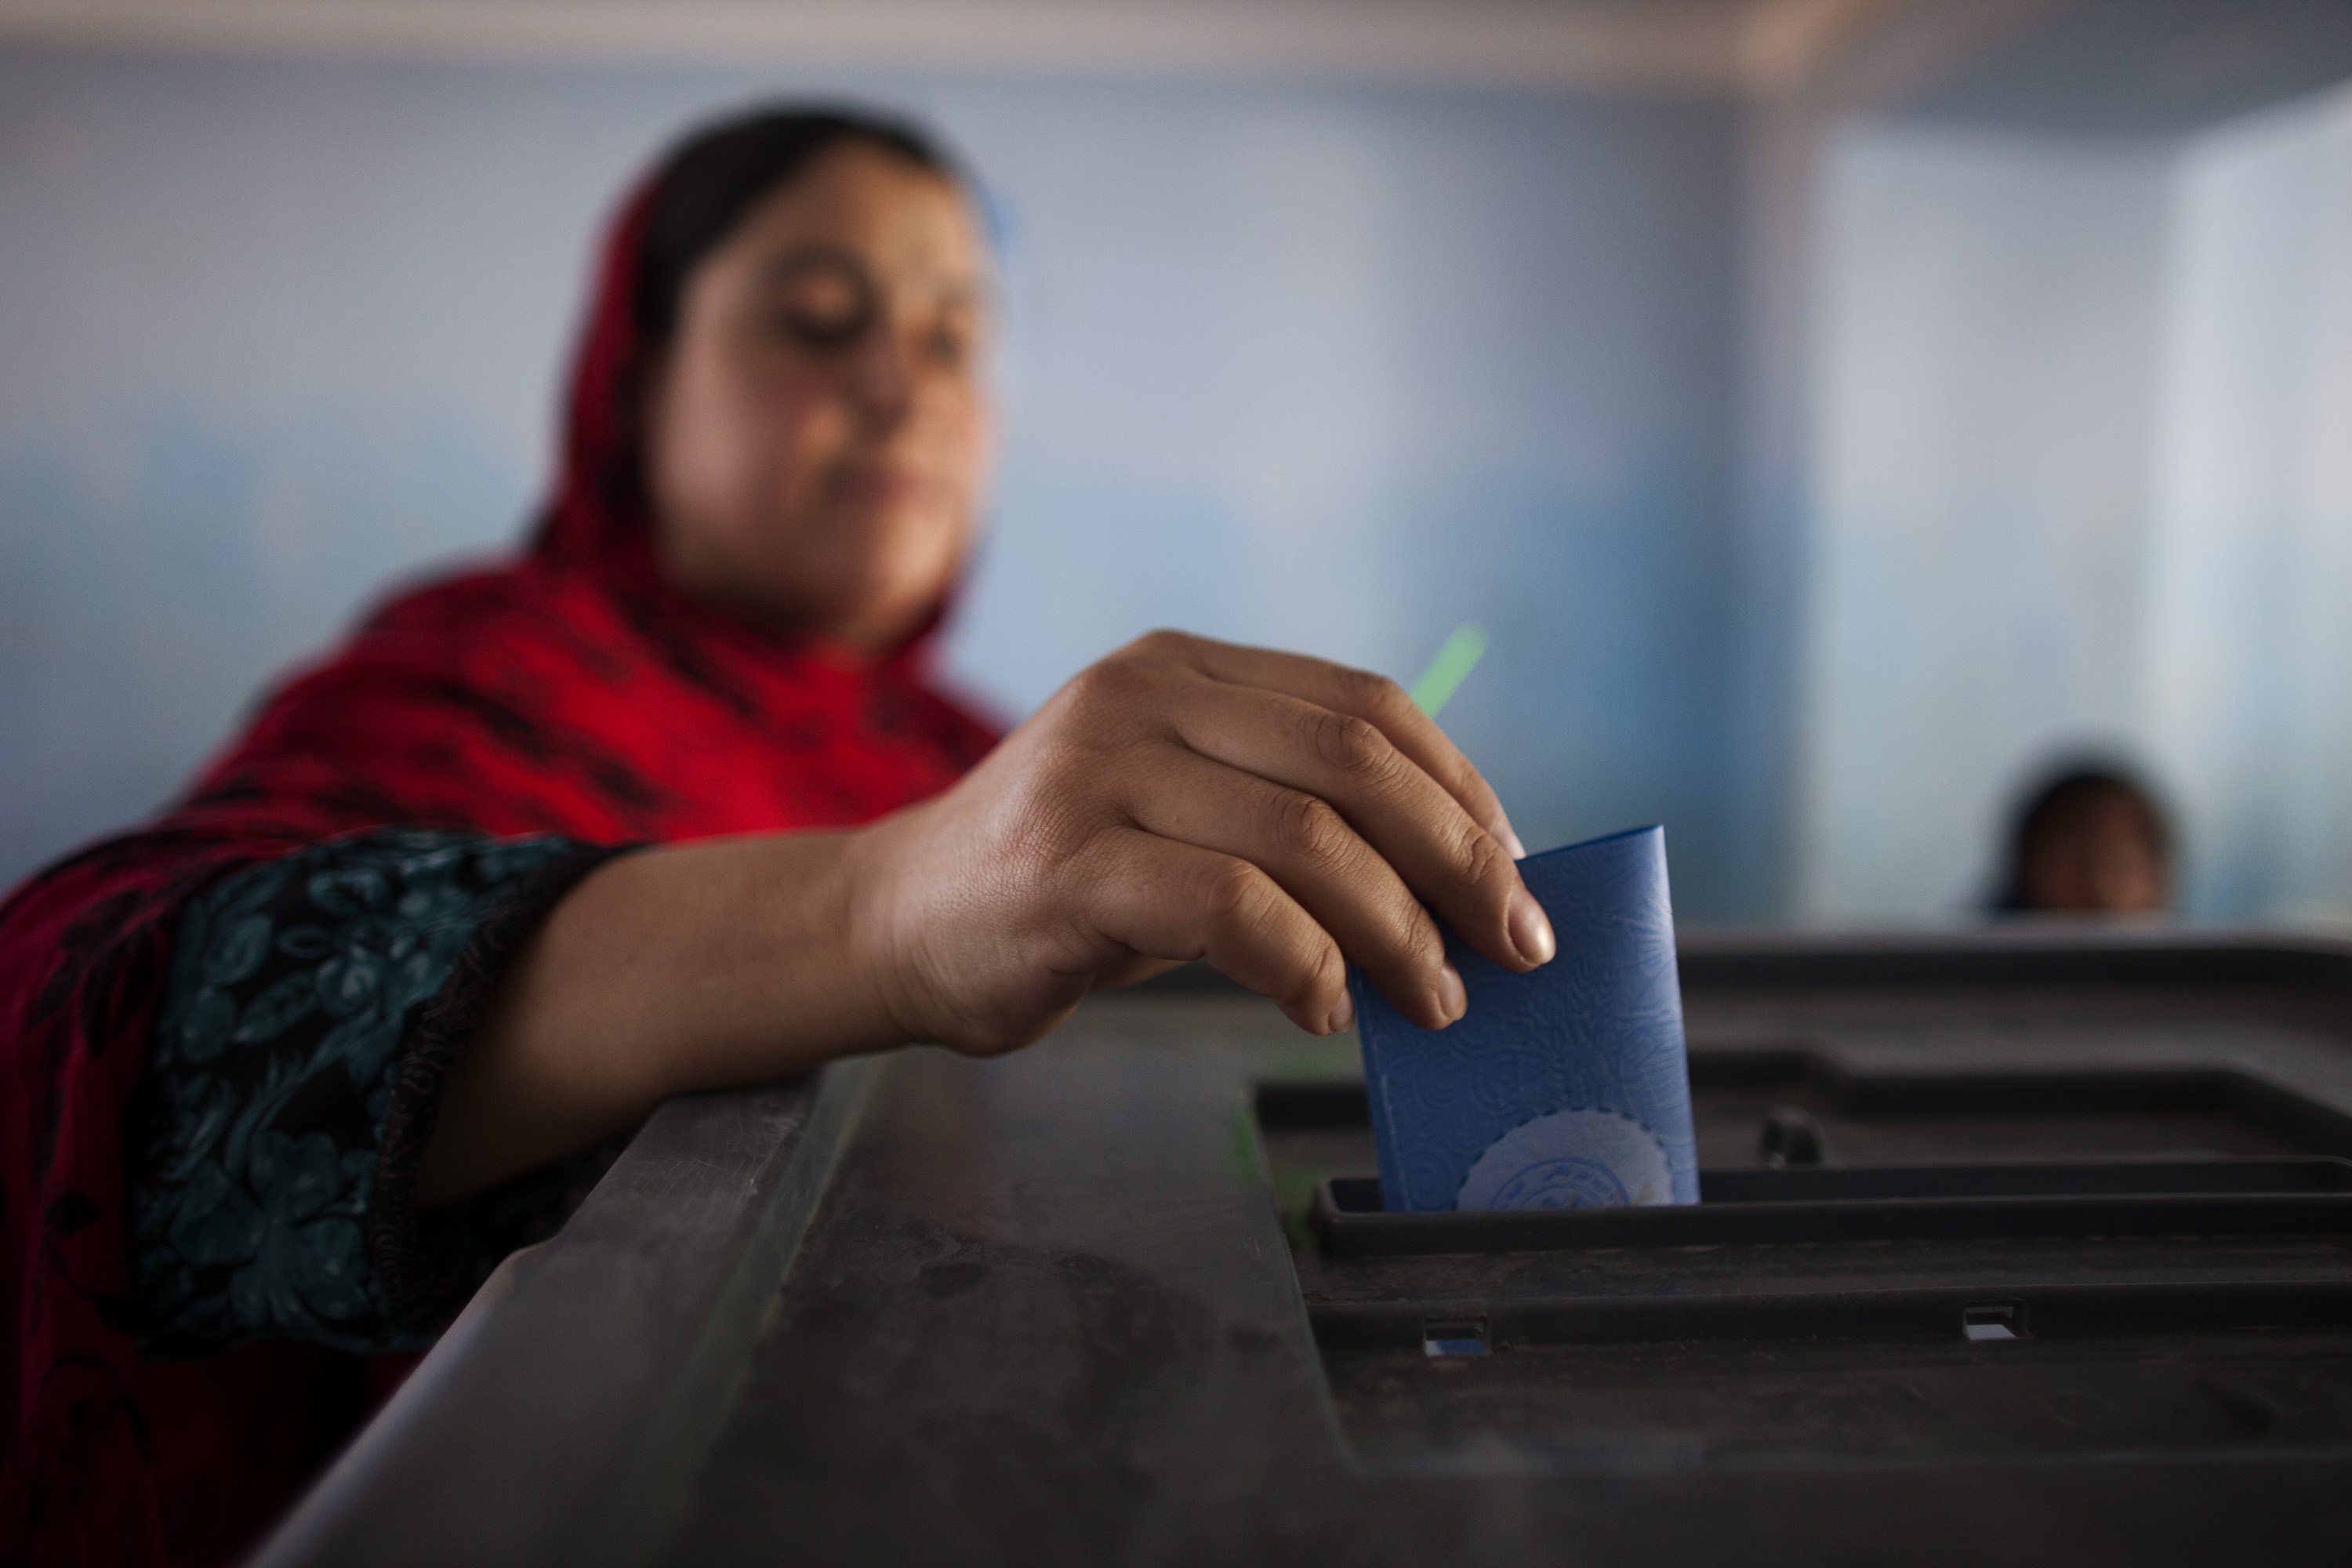 An Afghan woman casts her ballot during the second round for presidential election at a polling station in Kabul, Afghanistan, on June 14, 2014.